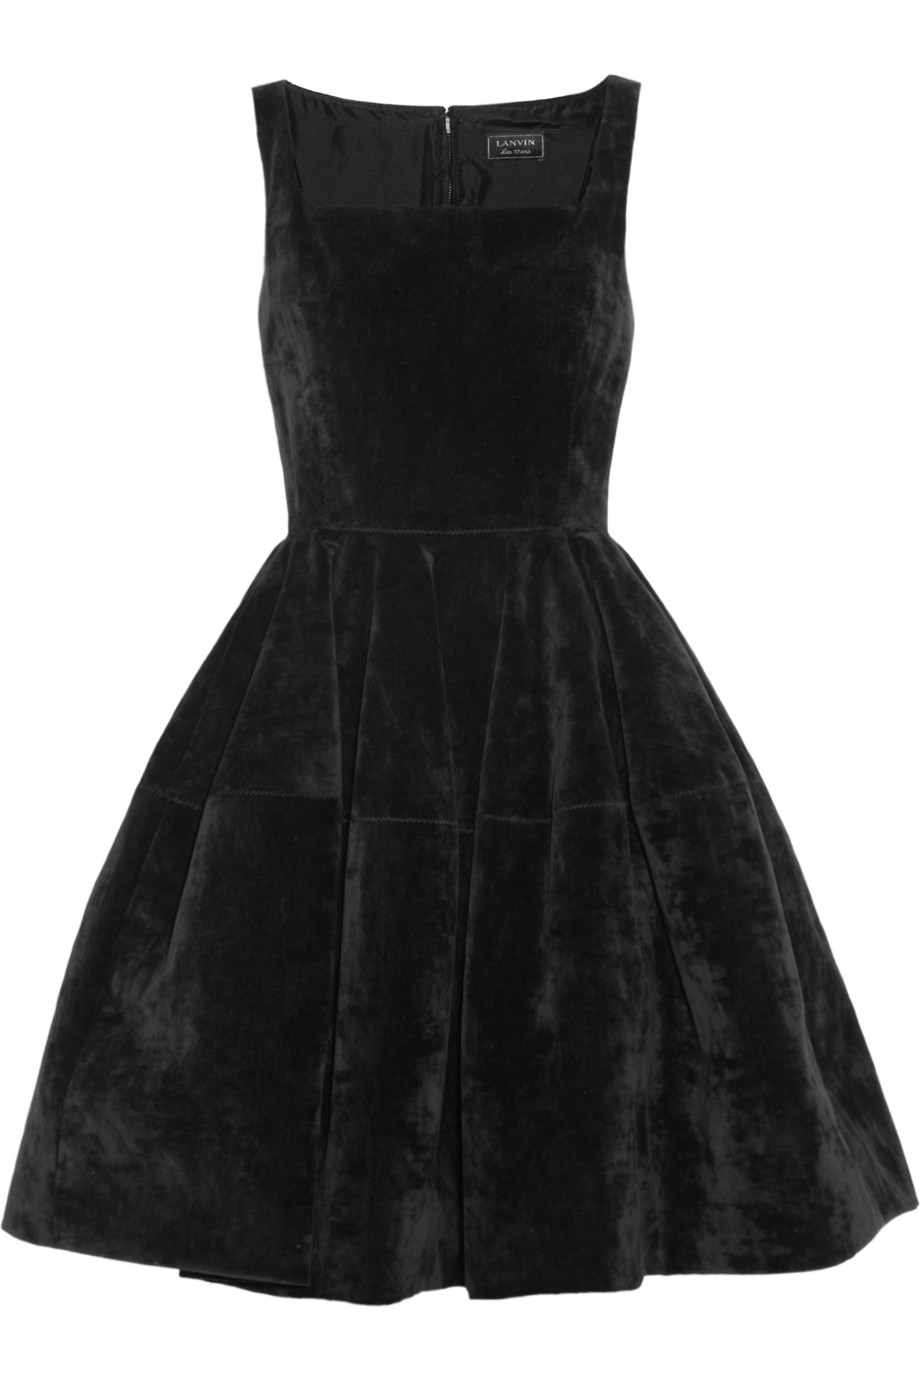 lanvin velvet dress in black lyst